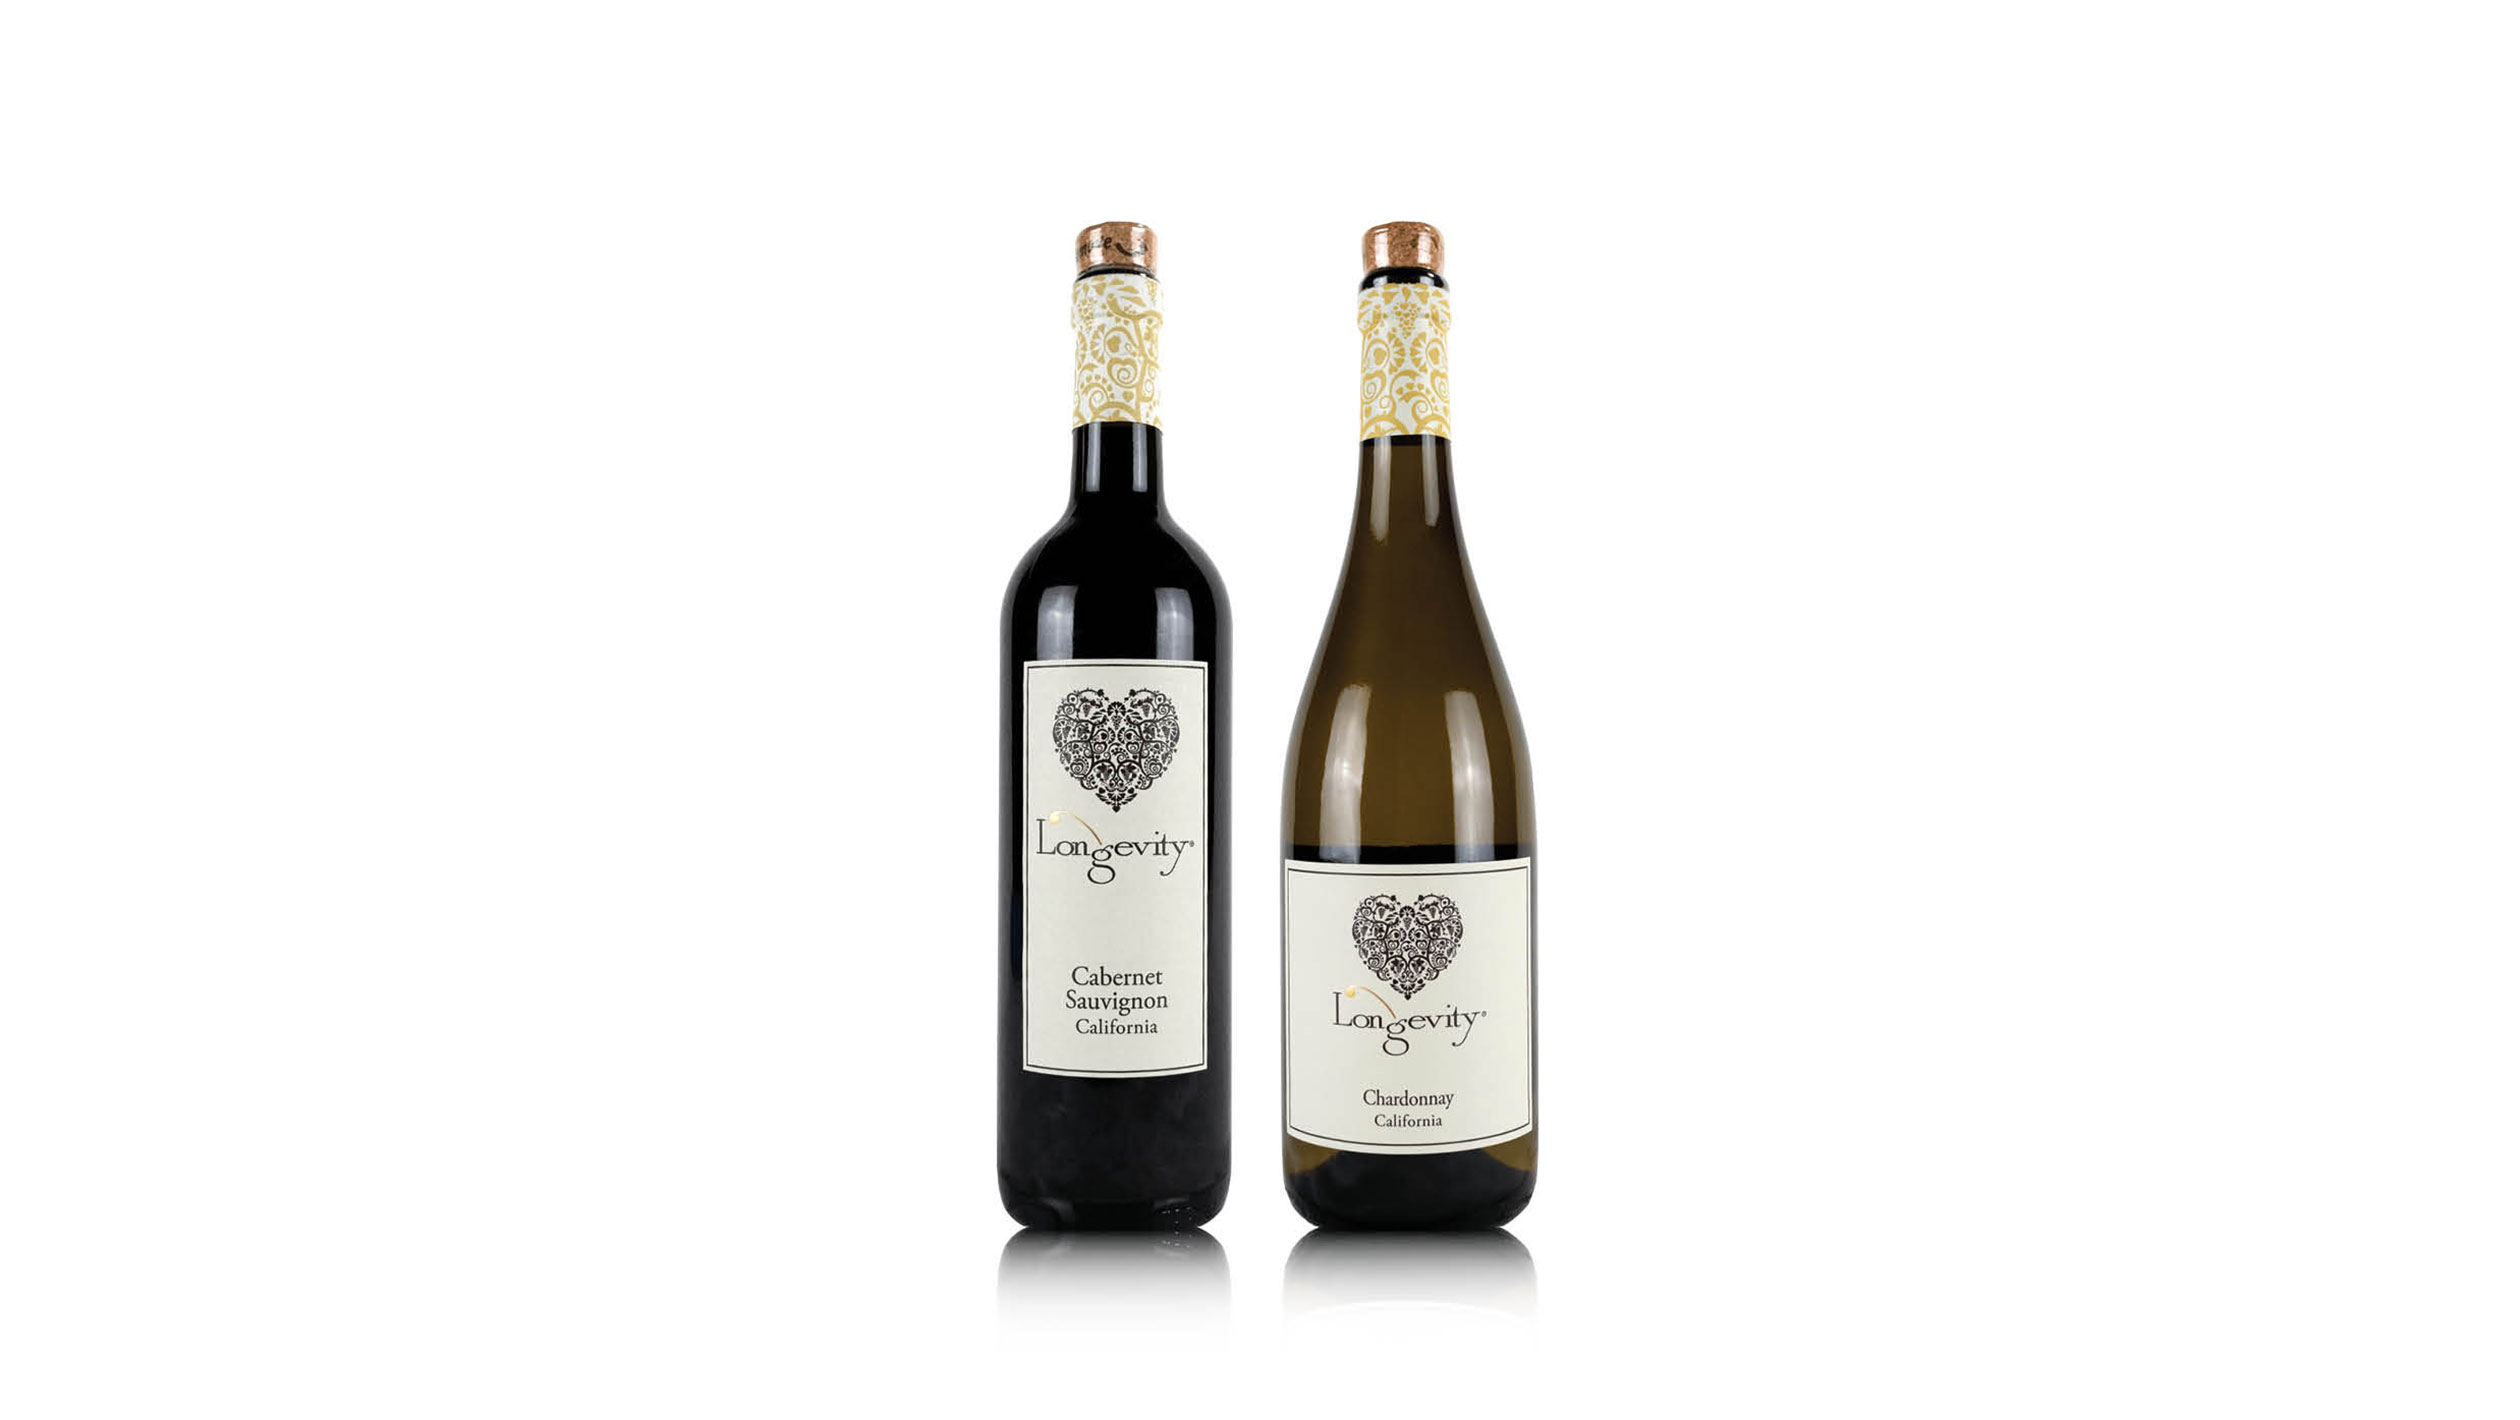 Two Bottles of longevity brand wines sitting on a white backdrop.